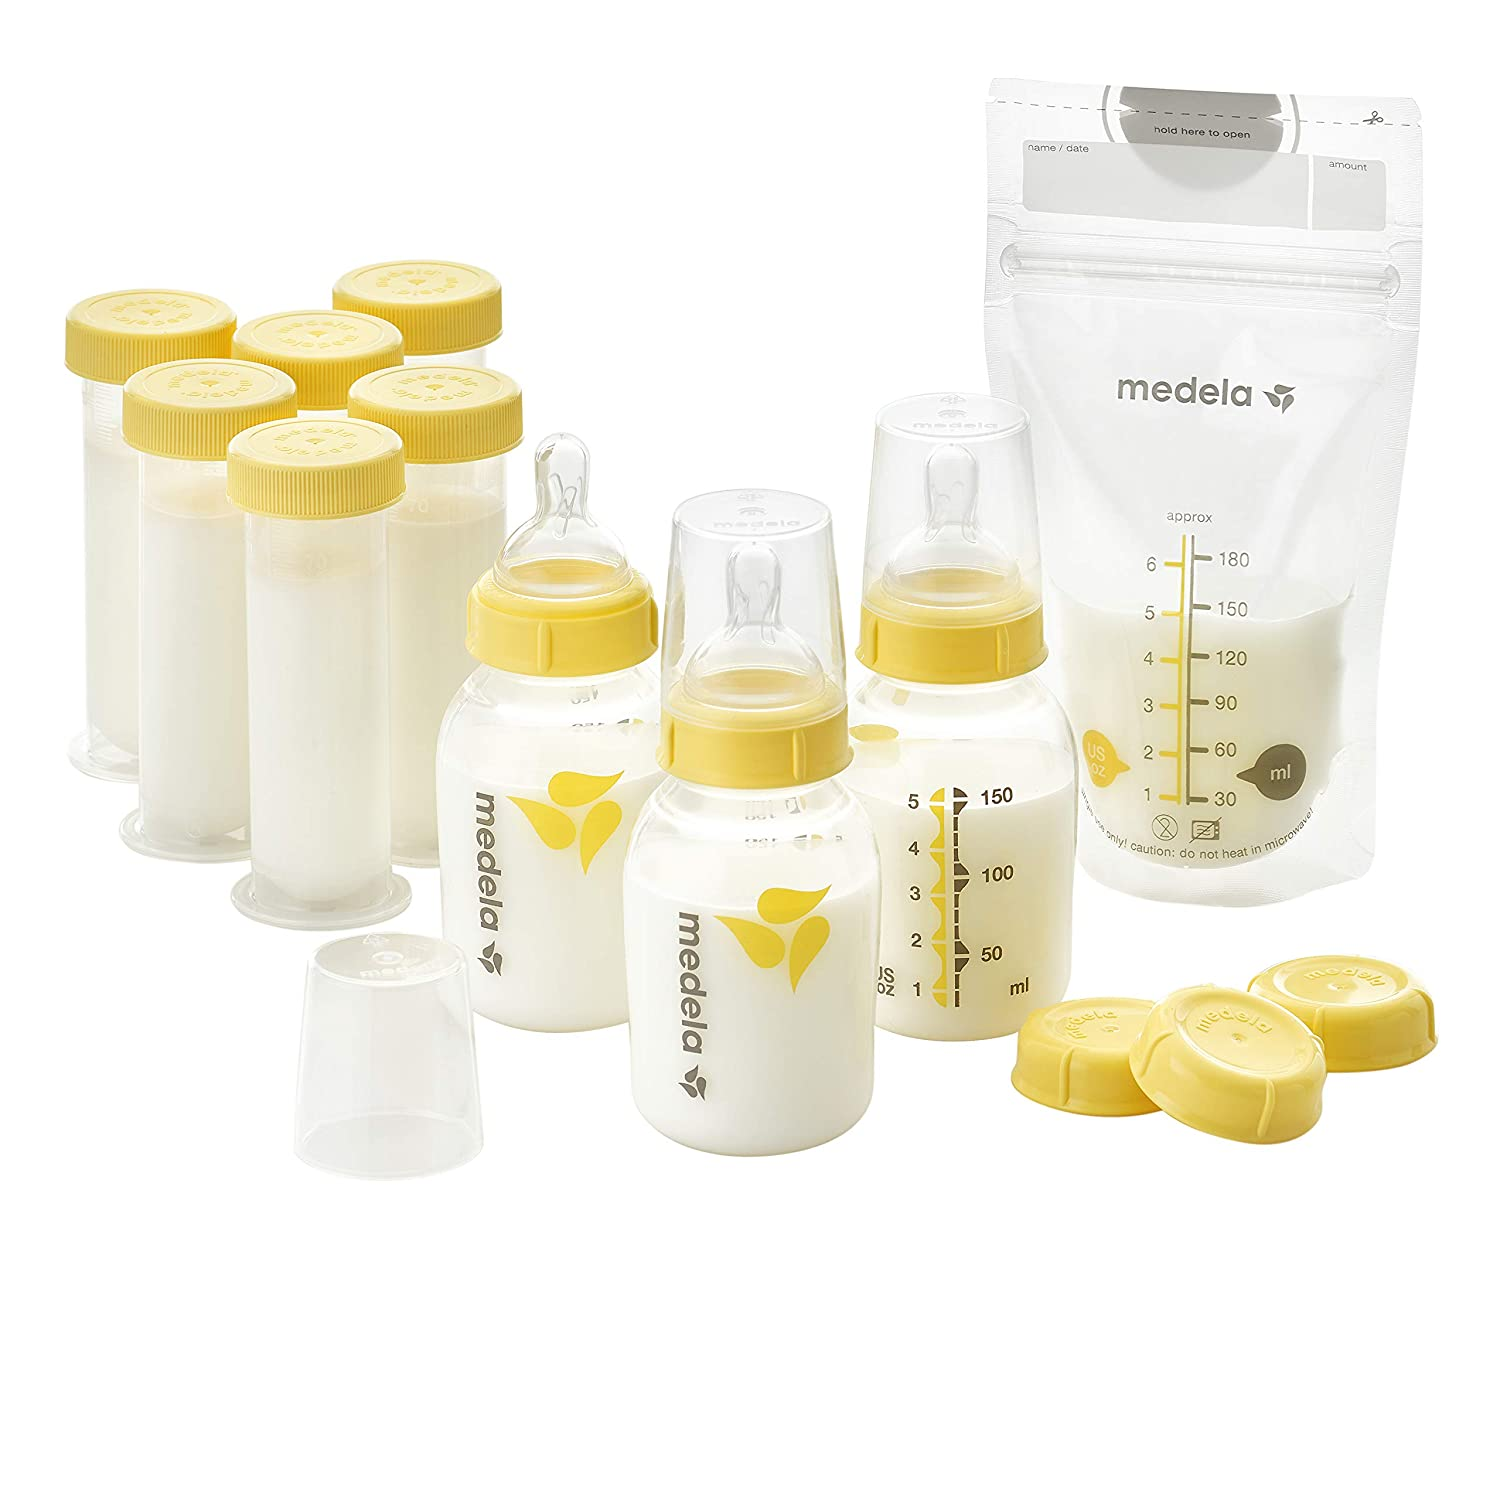 Medela Breastfeeding Gift Set, Breast Milk Storage System; Bottles, Nipples, Travel Caps, Breastmilk Storage Bags and More, Made Without BPA